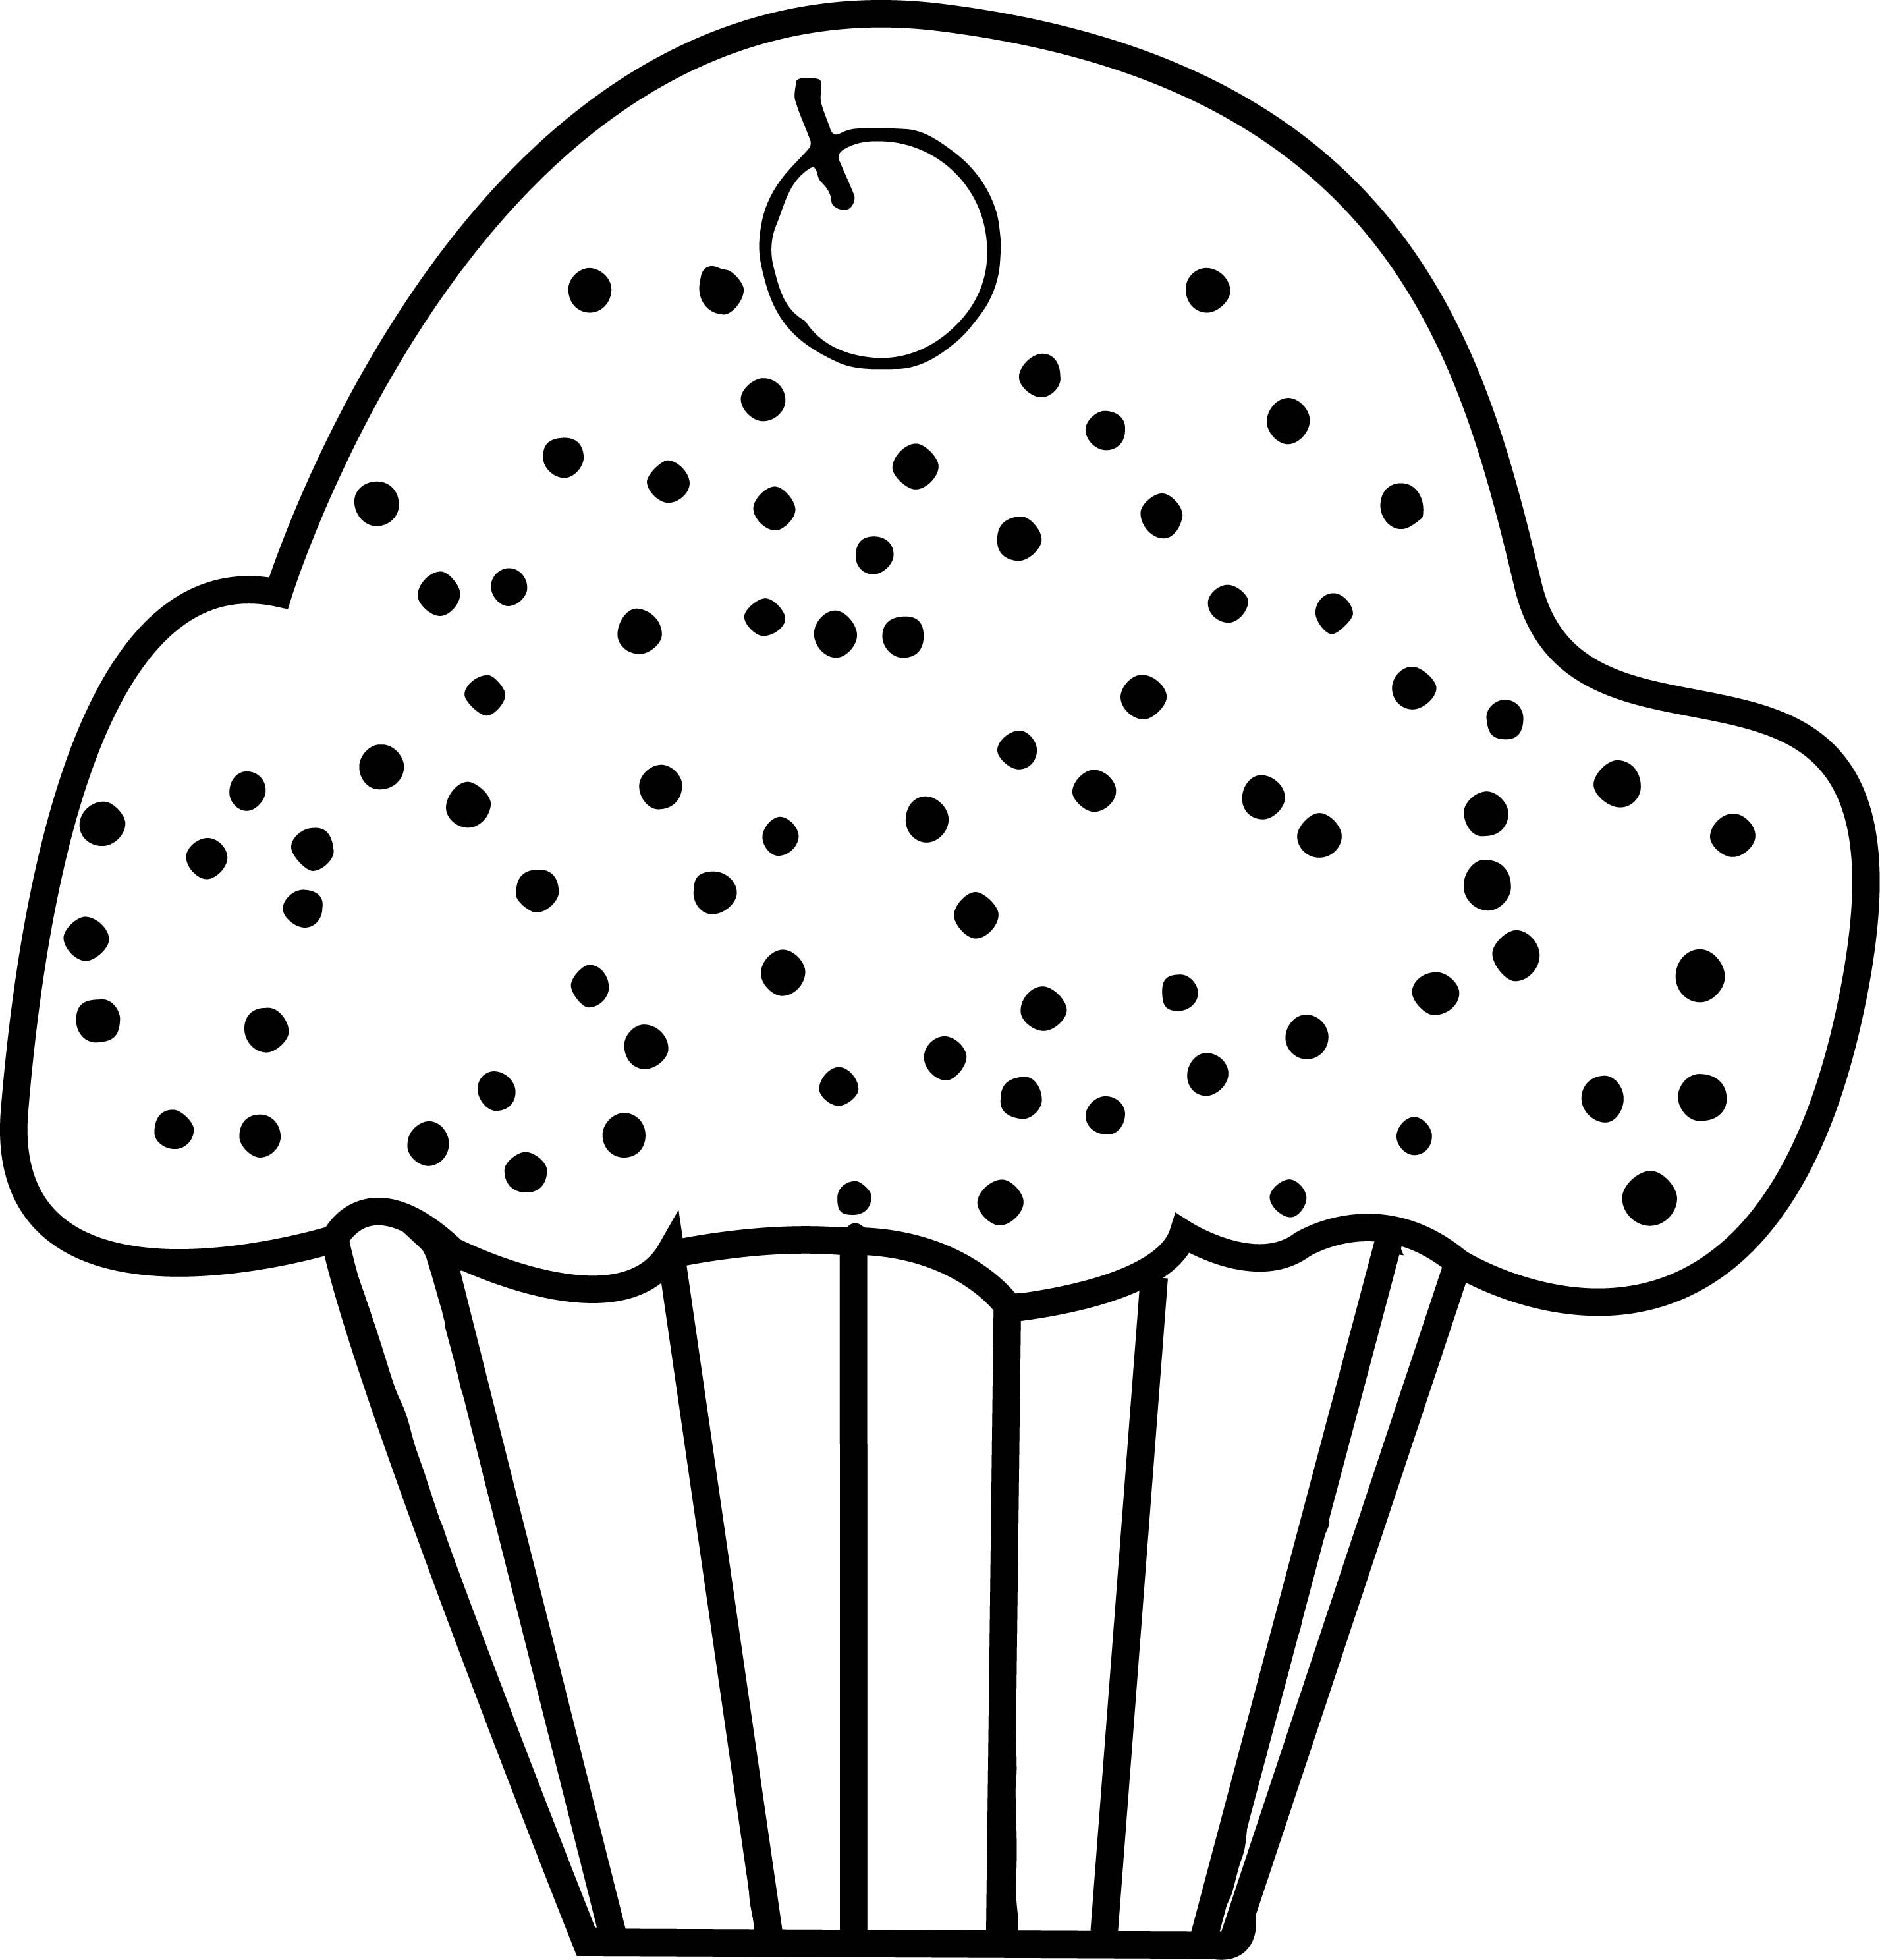 Cupcake Cup Cake Coloring Page